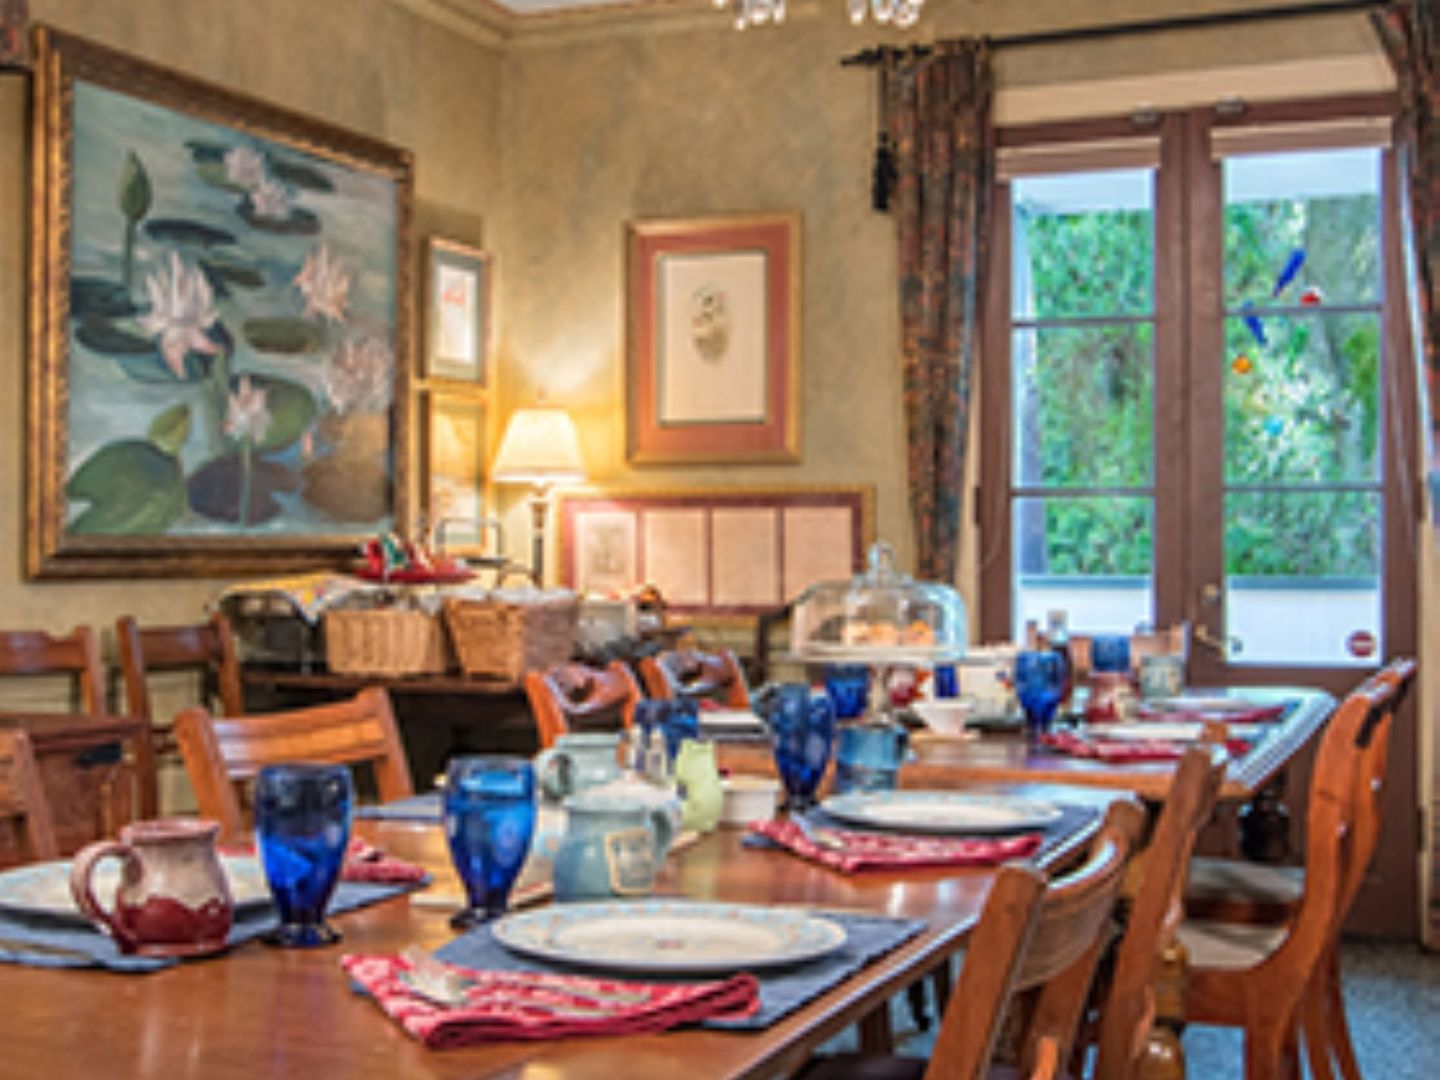 A dining room table at The Stockade Bed & Breakfast.